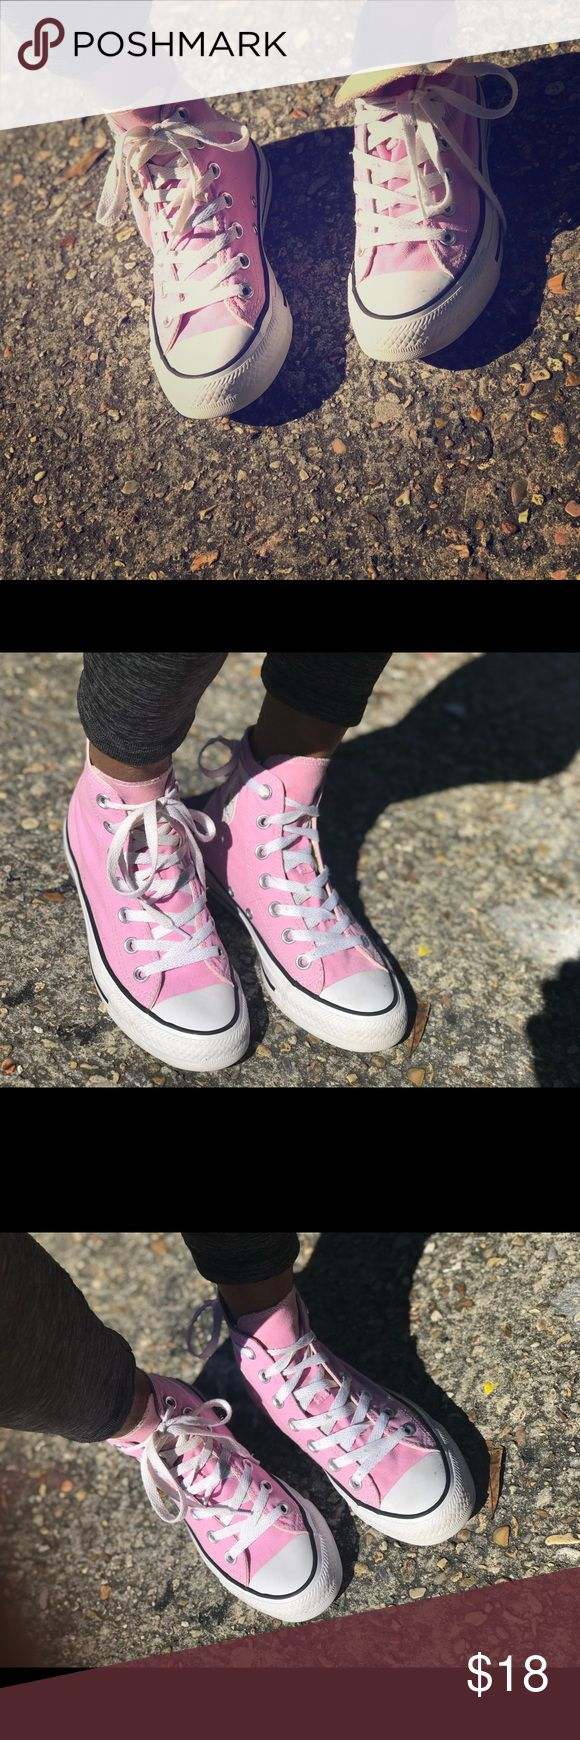 Pink high top converse Above the ankle, high top baby pink converse Converse Shoes Sneakers